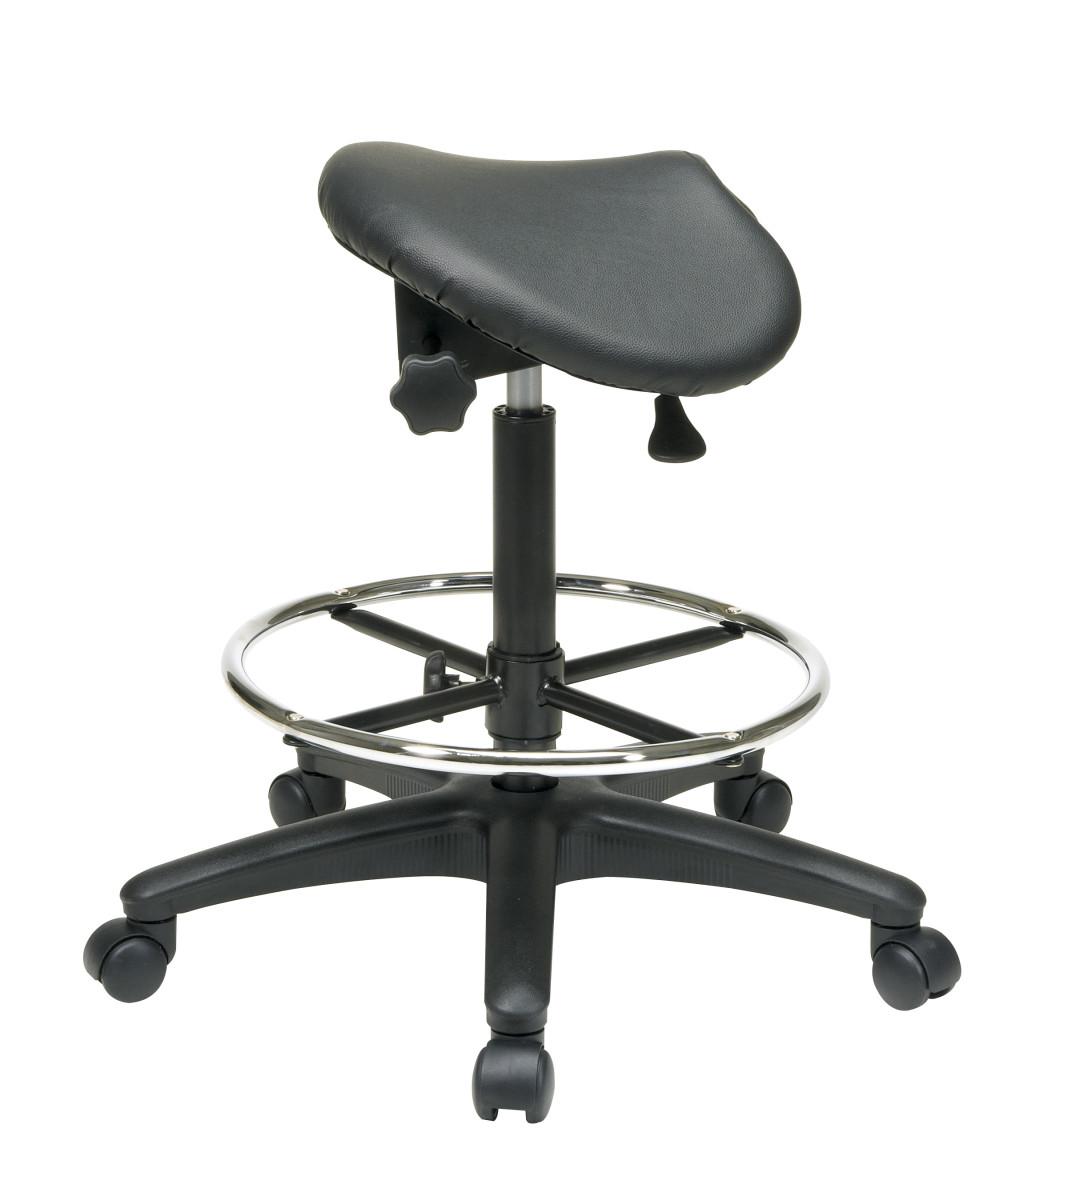 stool chair on wheels bean bag chairs for teens backless with saddle seat dual wheel carpet casters